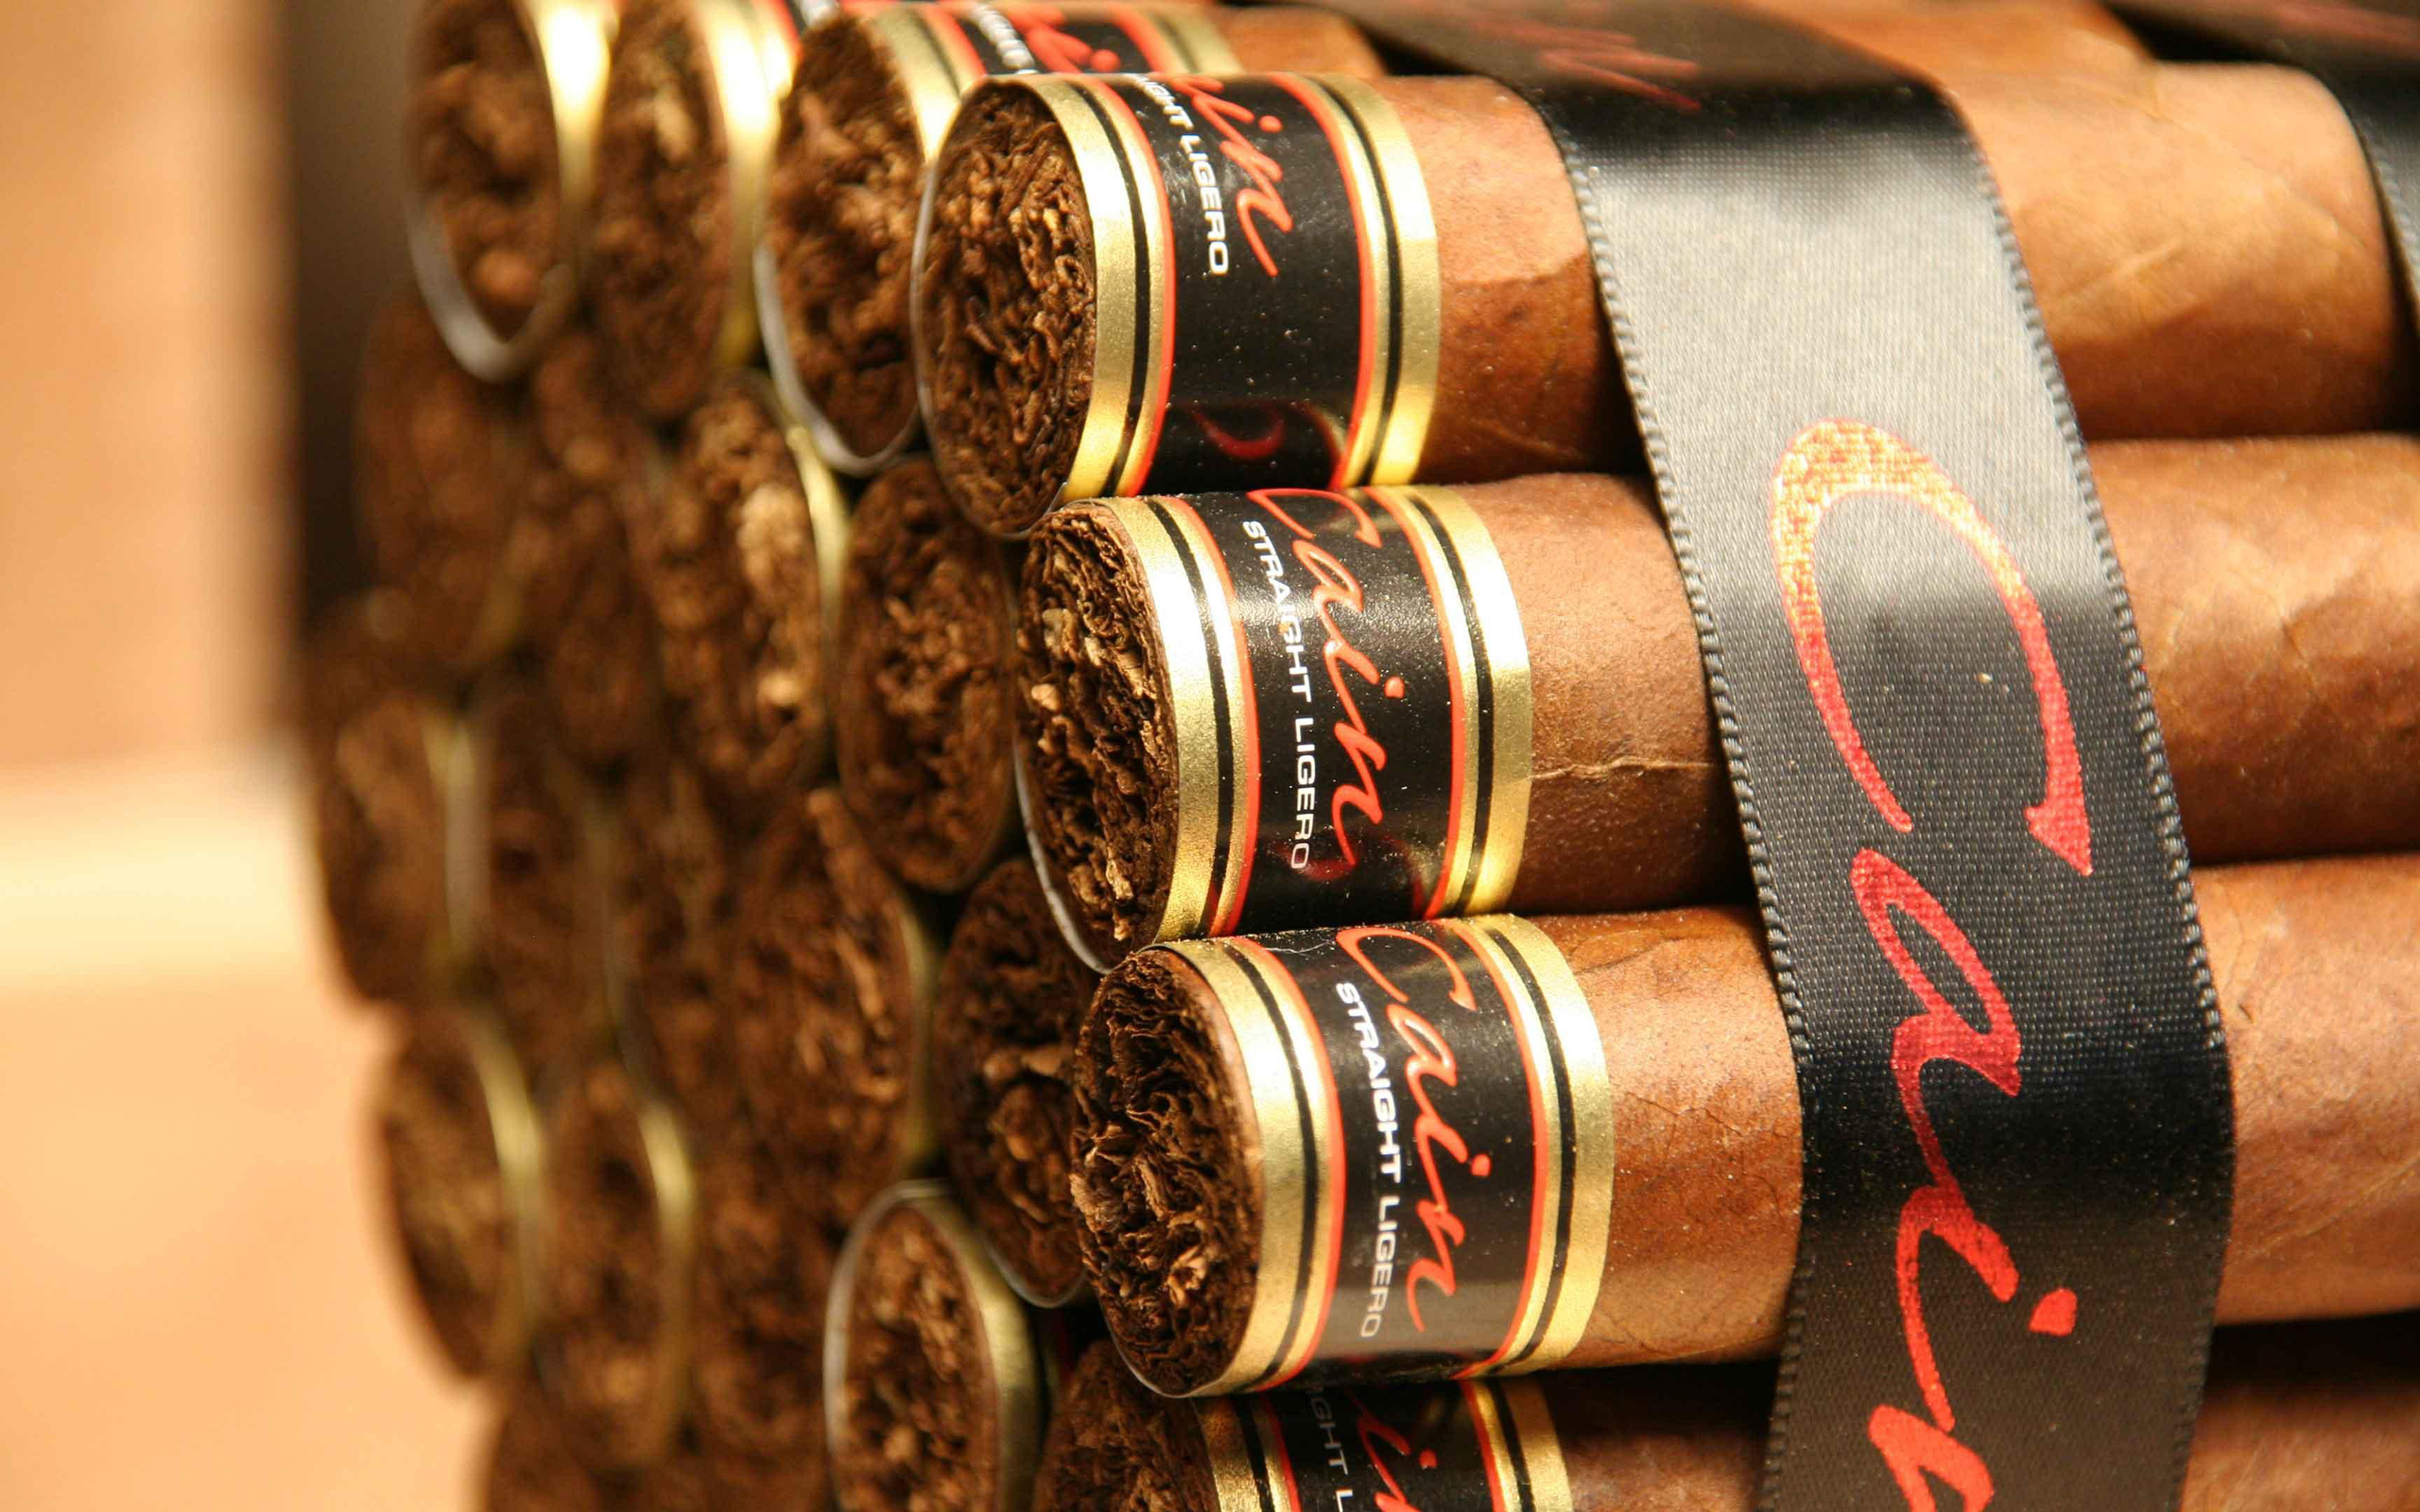 cigar hd wallpaper | background image | 2560x1600 | id:152141